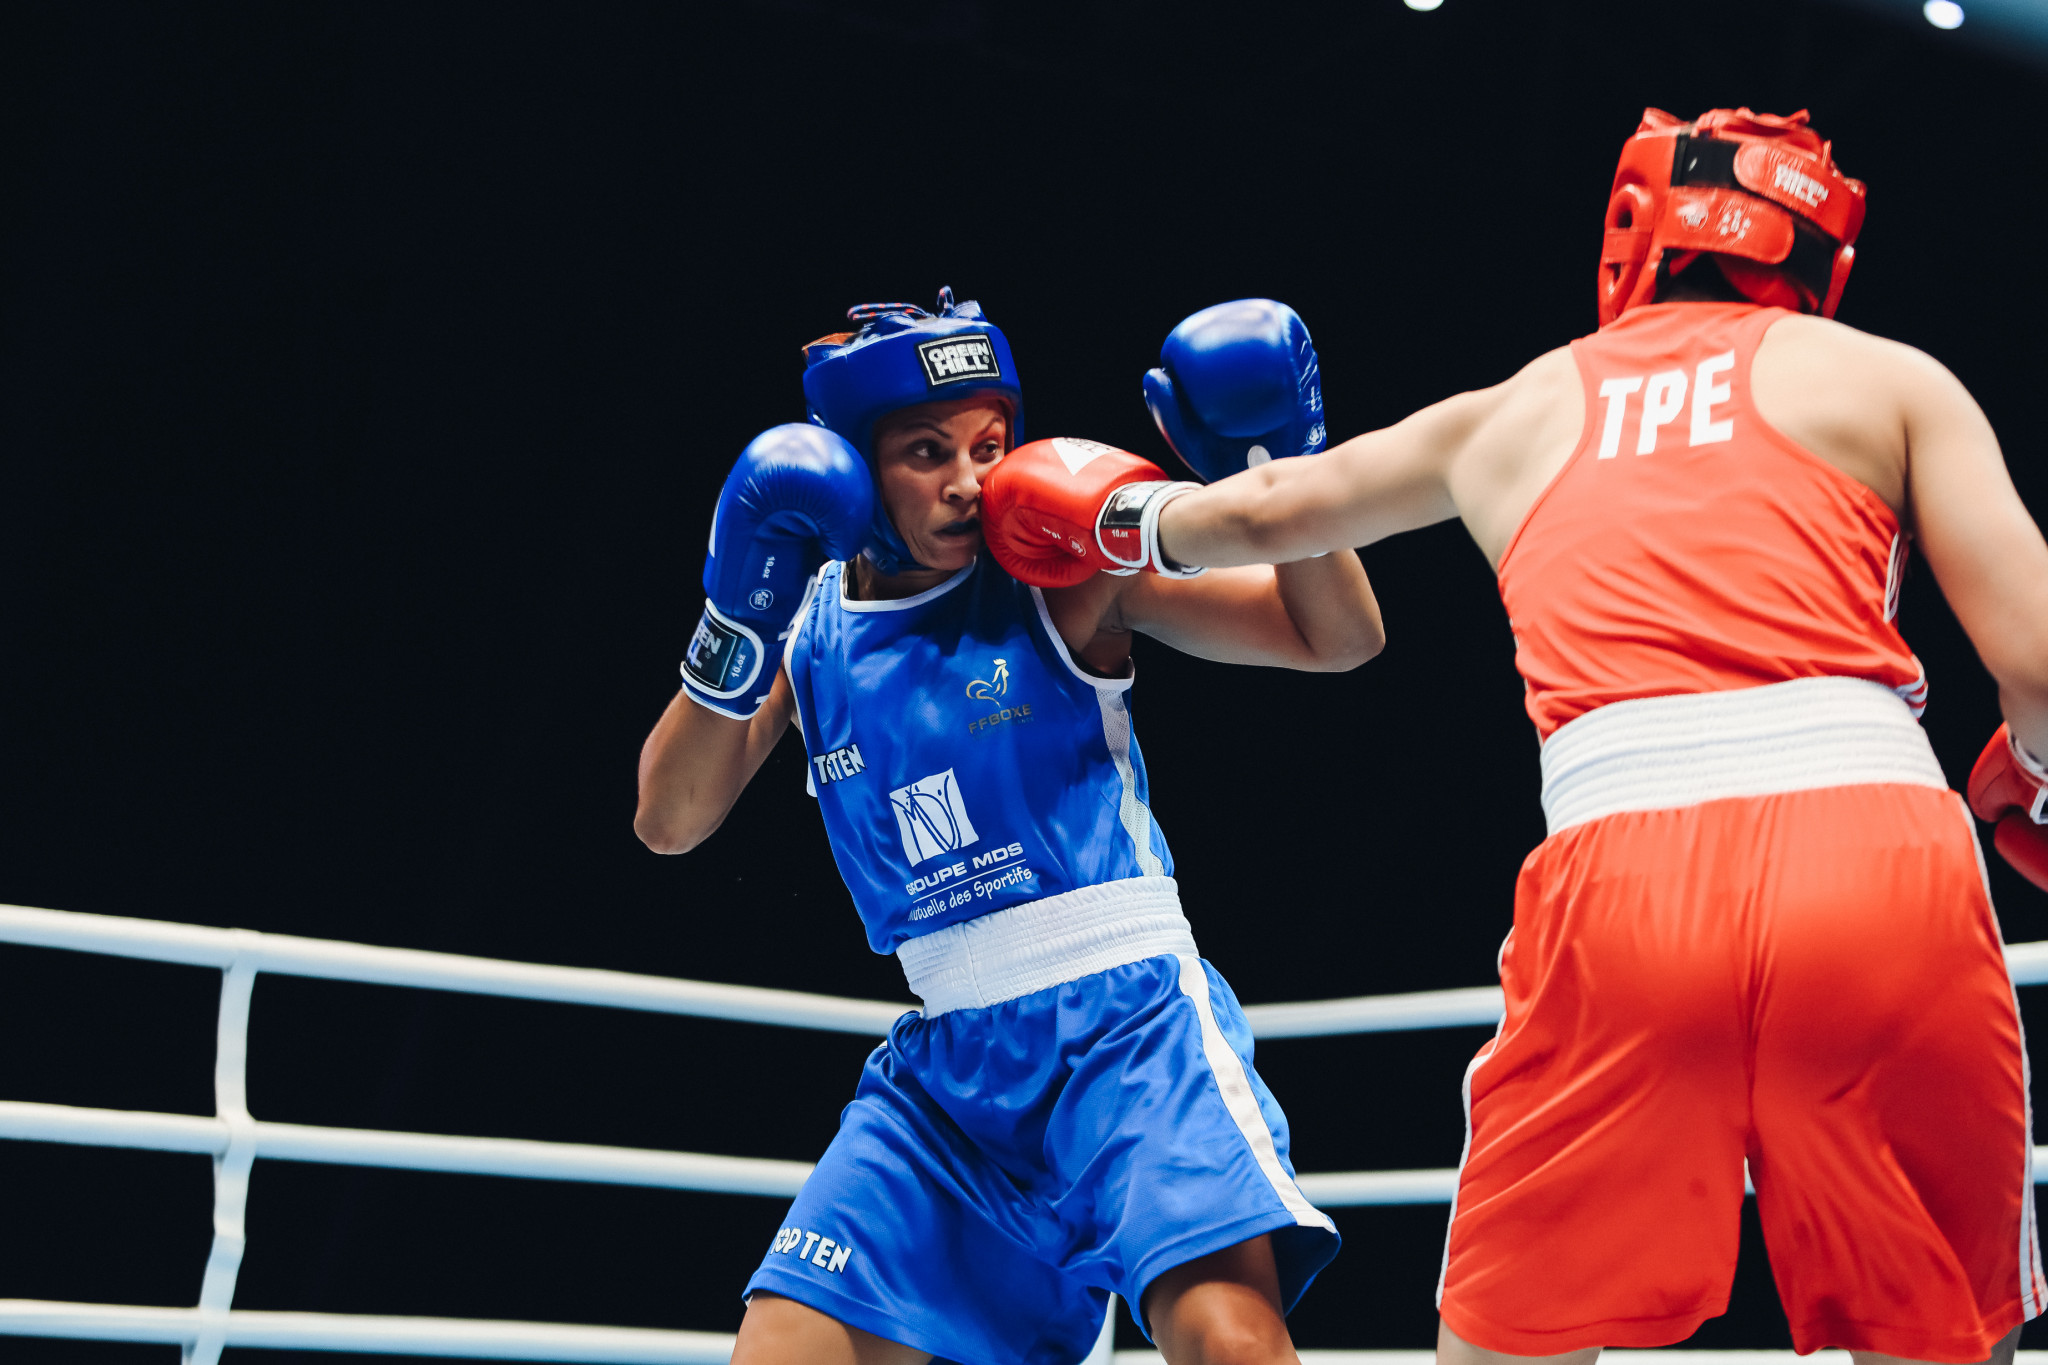 Compatriot and welterweight top seed, Chen Nien-Chin, was competing against Emilie Sonvico of France ©AIBA